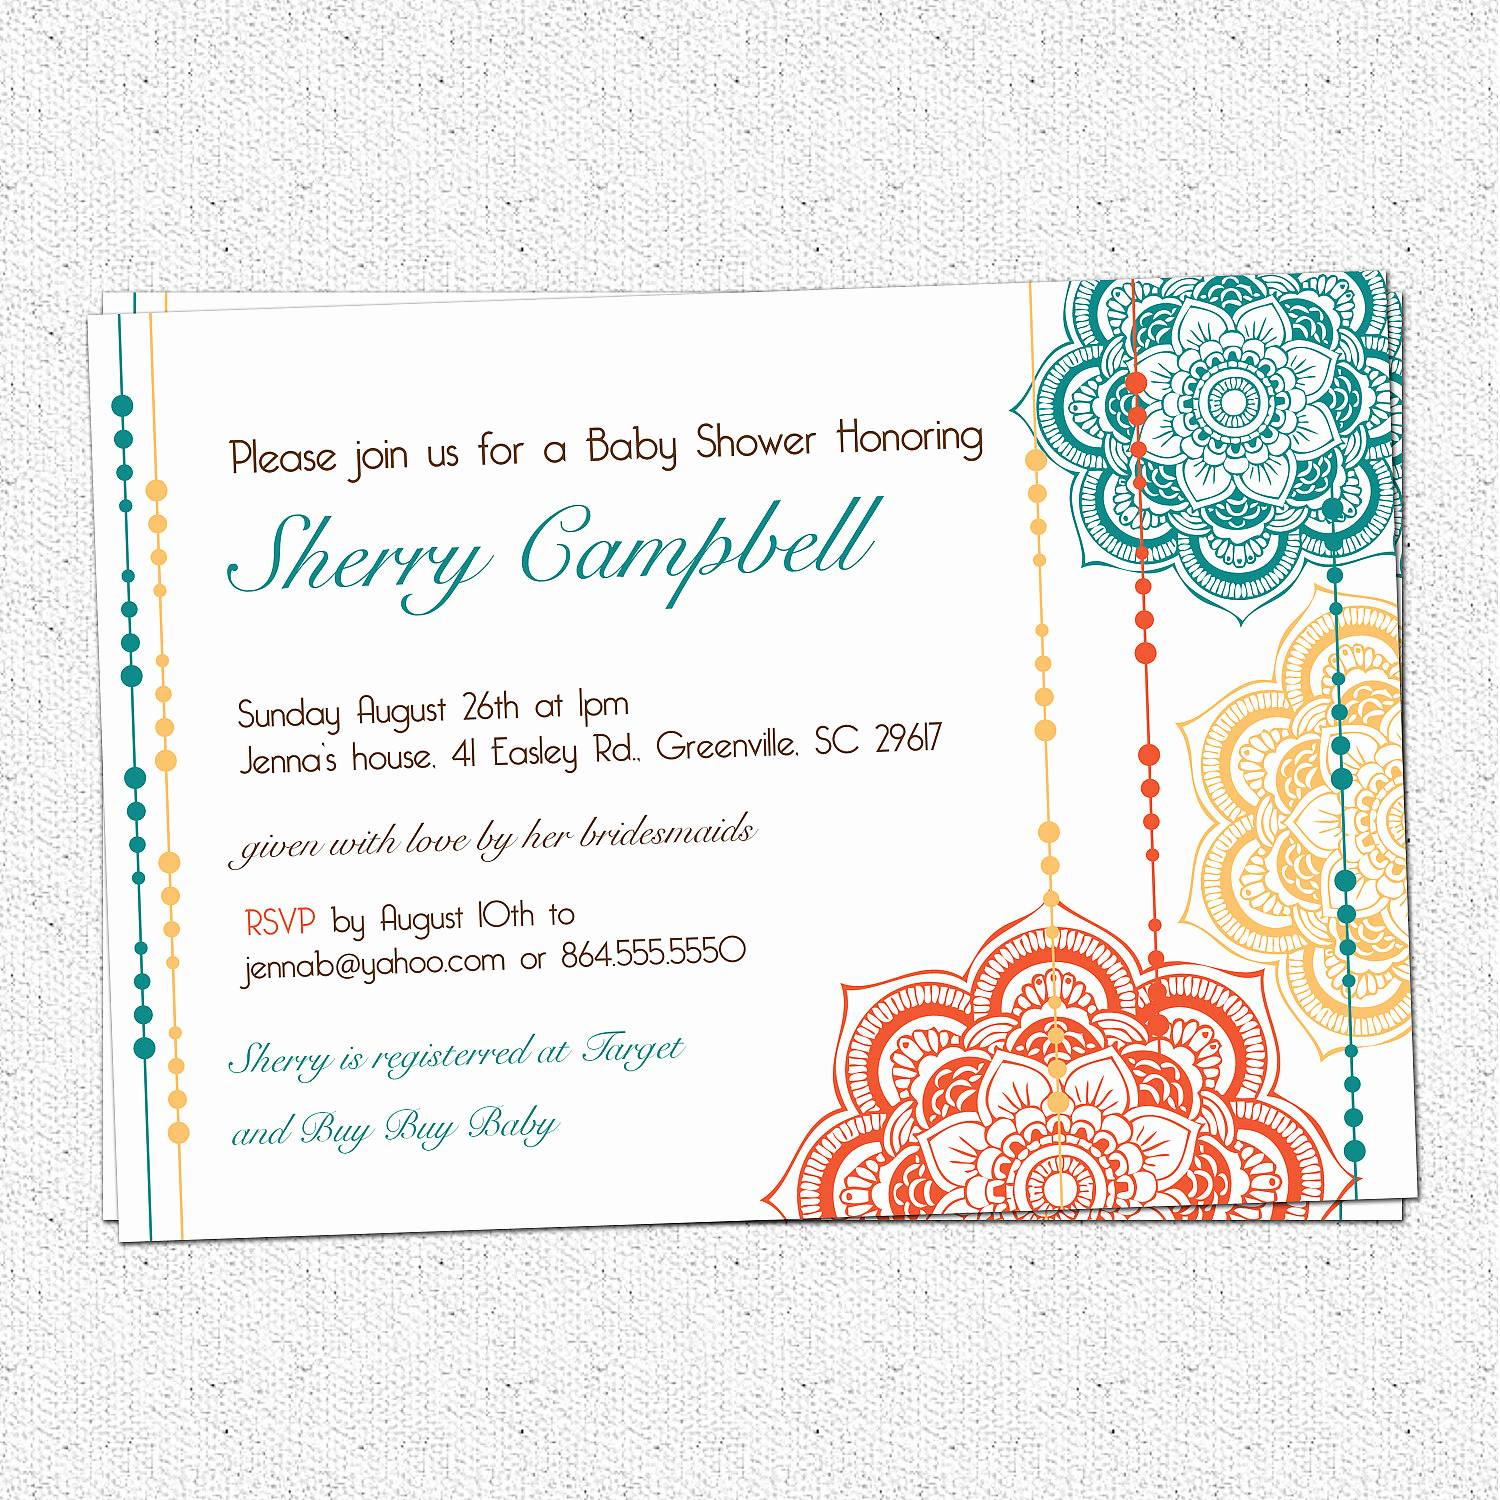 Full Size of Baby Shower:sturdy Baby Shower Invitation Template Image Concepts Baby Shower Invitation Template Free Princess Baby Shower Invitation Templates Best Of Baby Shower Free Princess Baby Shower Invitation Templates Best Of Baby Shower Elegant Baby Shower Invitations Elegant Baby Shower